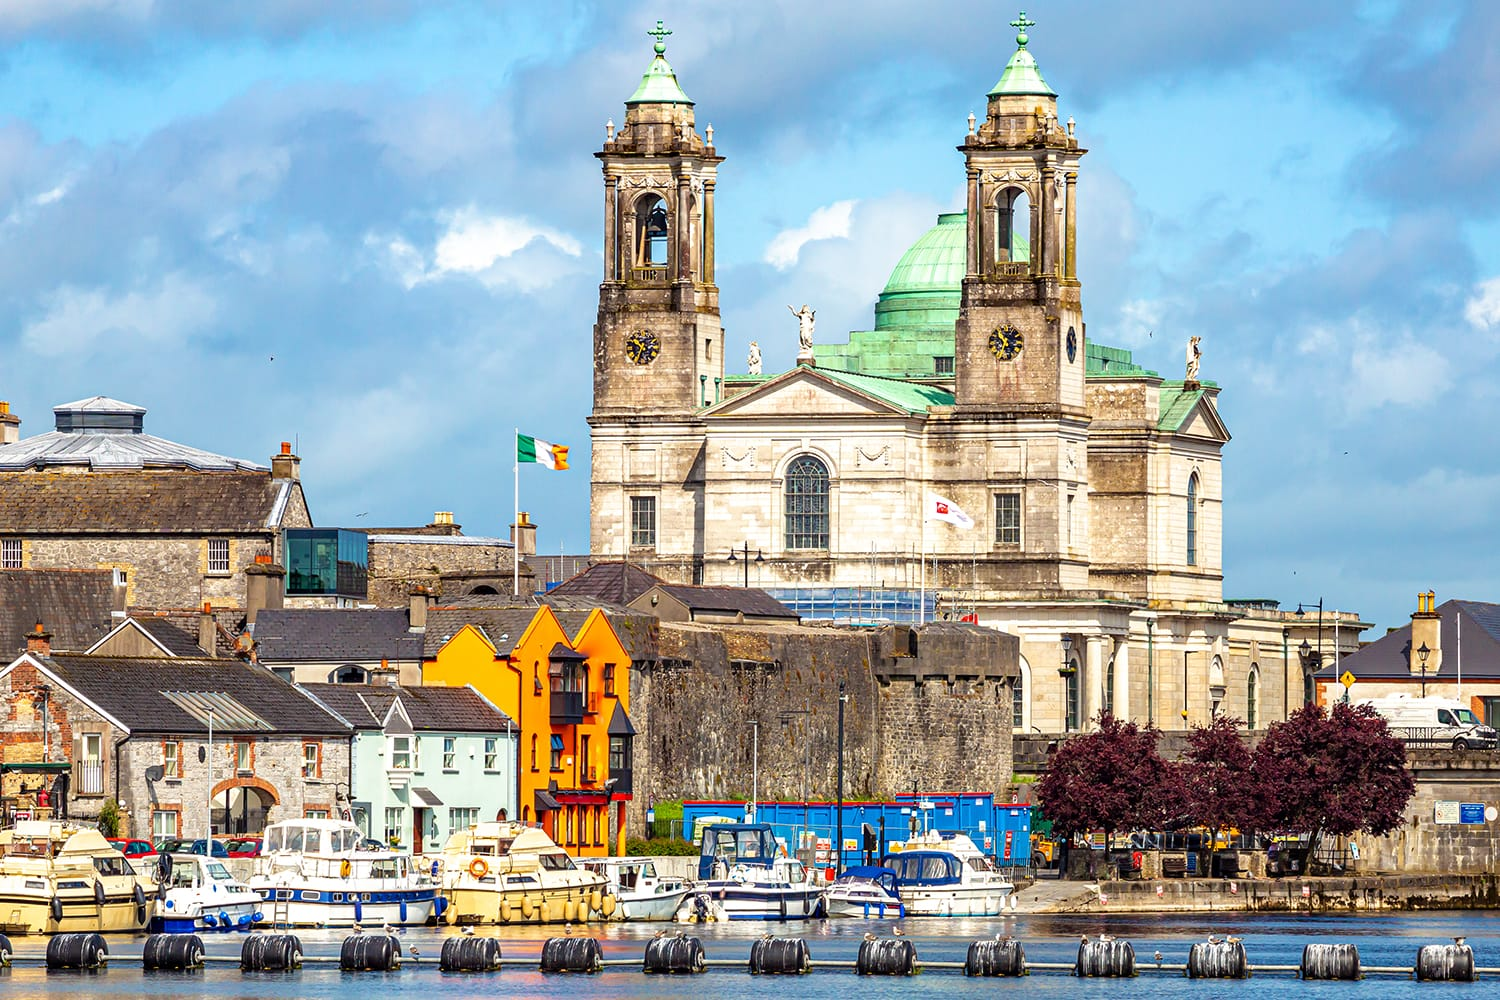 Beautiful view of the parish church of Ss. Peter and Paul and the castle in the town of Athlone next to the river Shannon